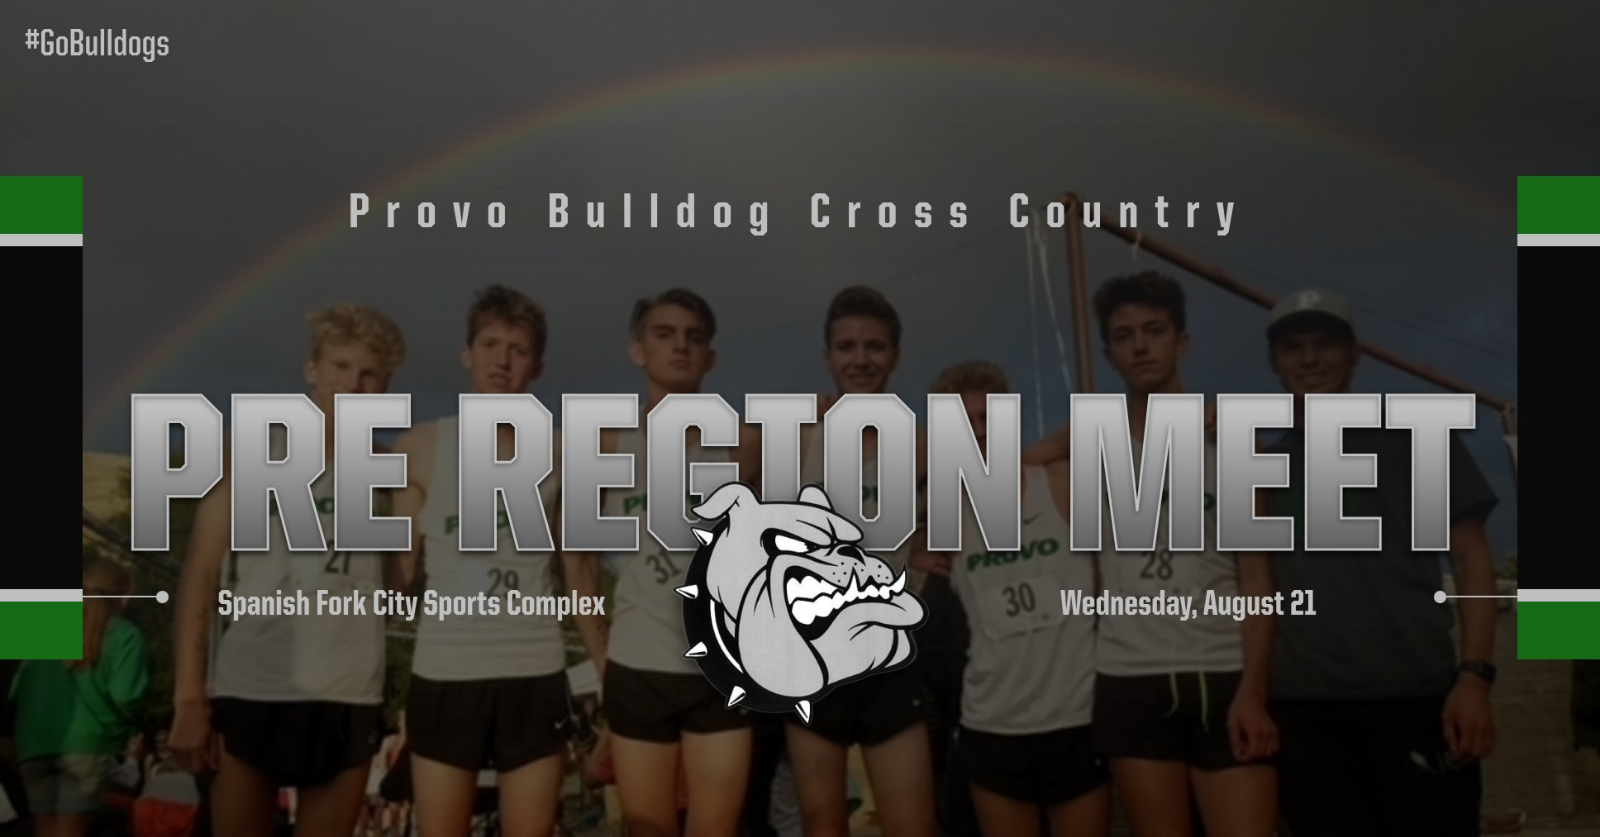 Cross Country Pre-Region Meet at Spanish Fork Today